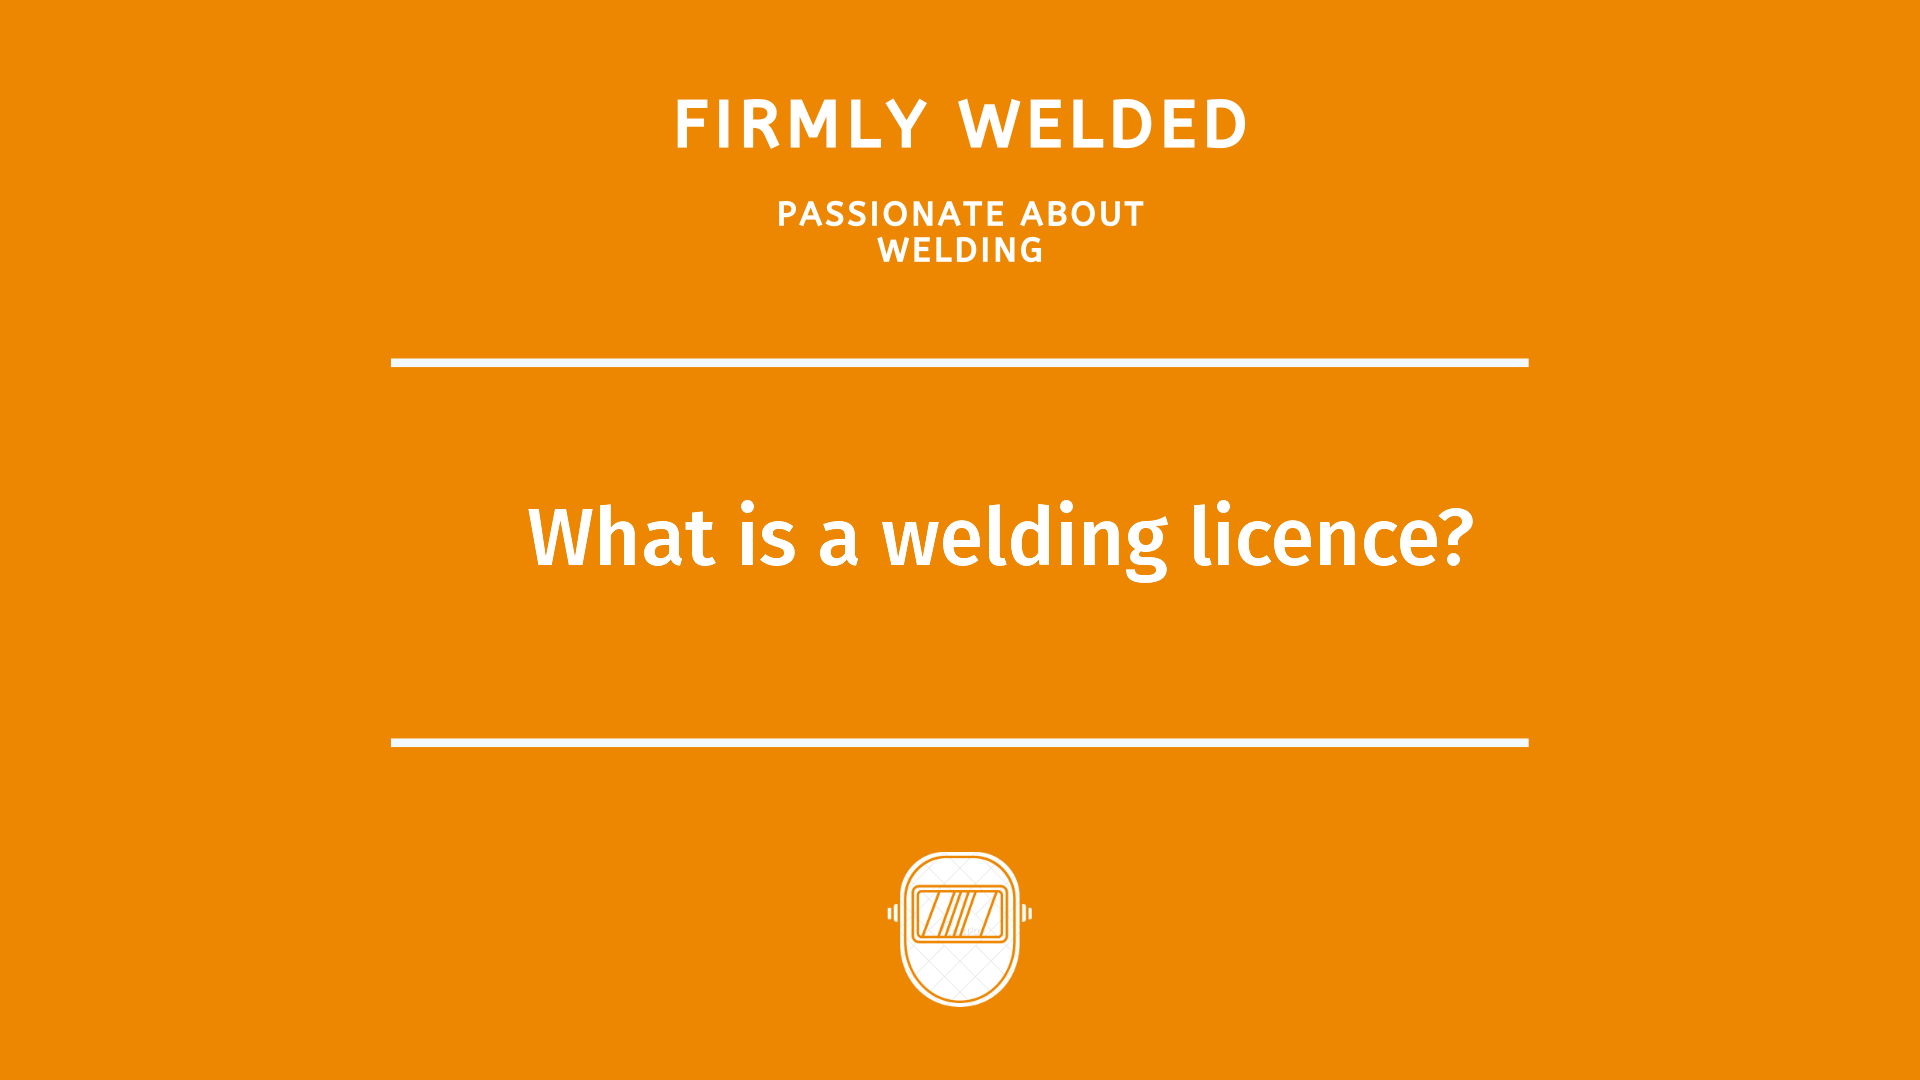 What is a welding licence?